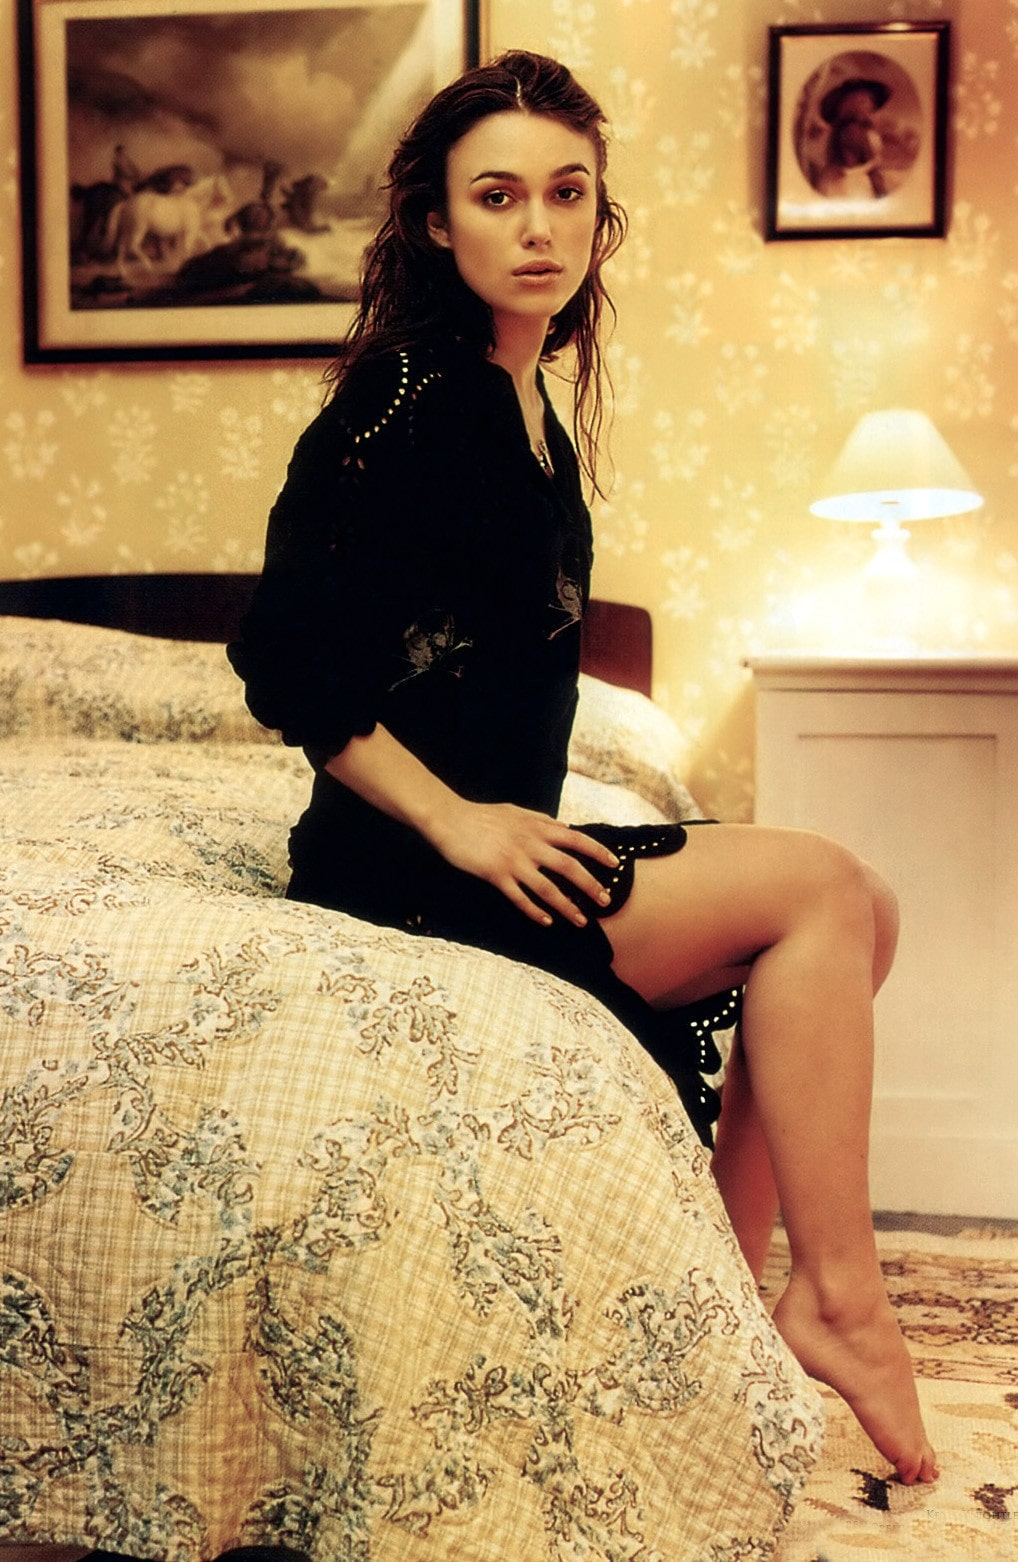 61 Hot Pictures Of Keira Knightley Will Make Your Day A Win-5441